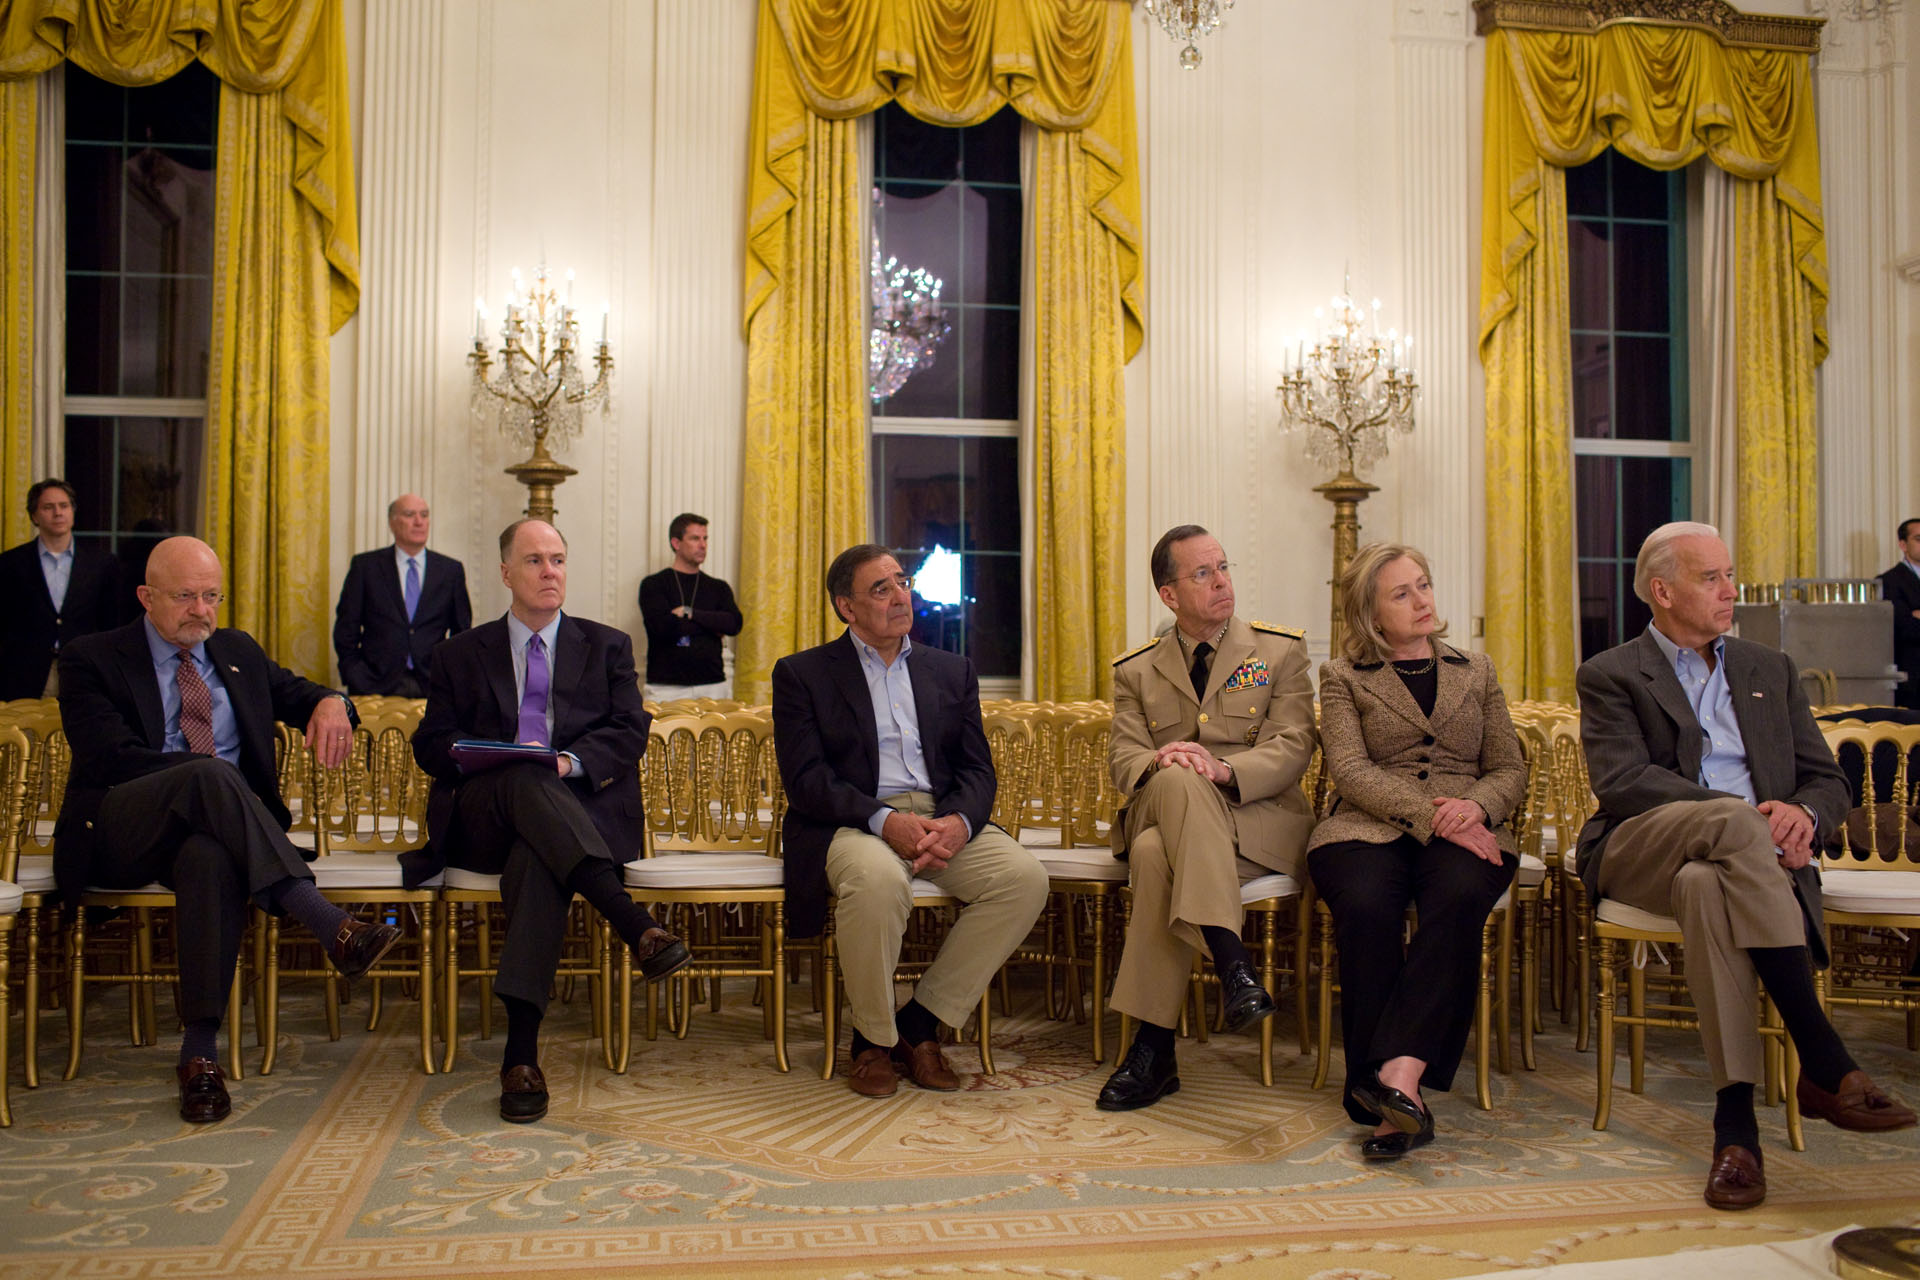 The National Security Team Listens to President Obama's Statement on Osama bin Laden